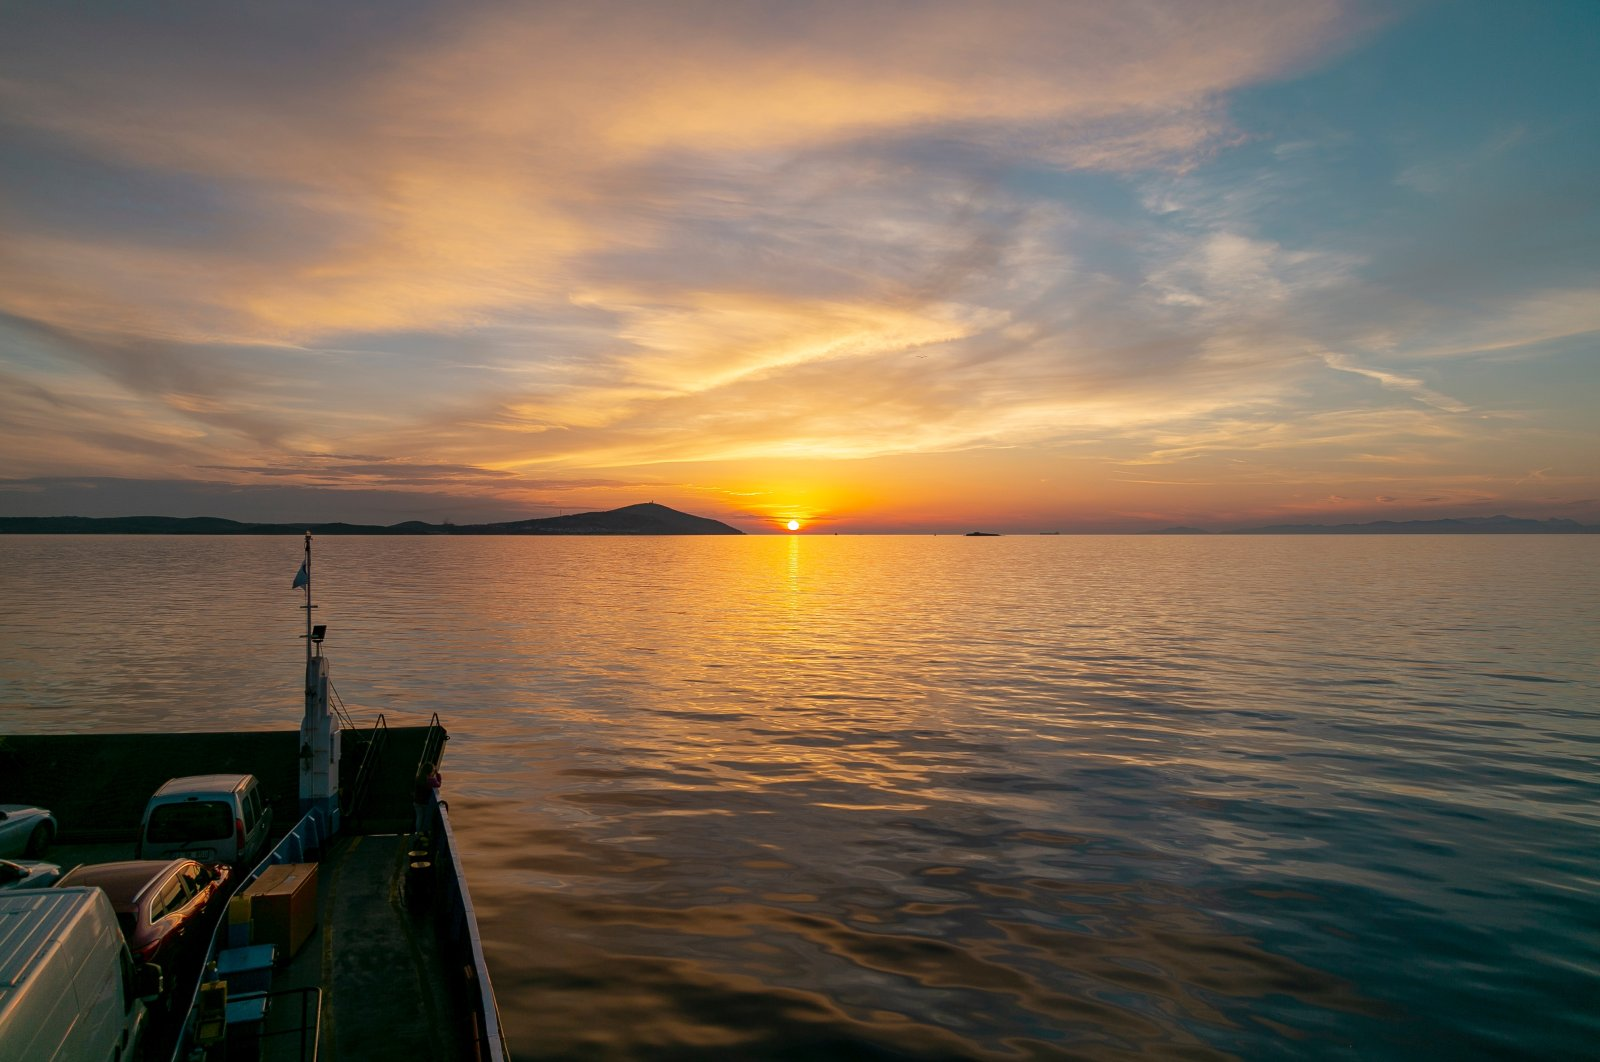 A Geyikli ferryboat transports cars and passengers to Bozcaada island. (Shutterstock Photo)